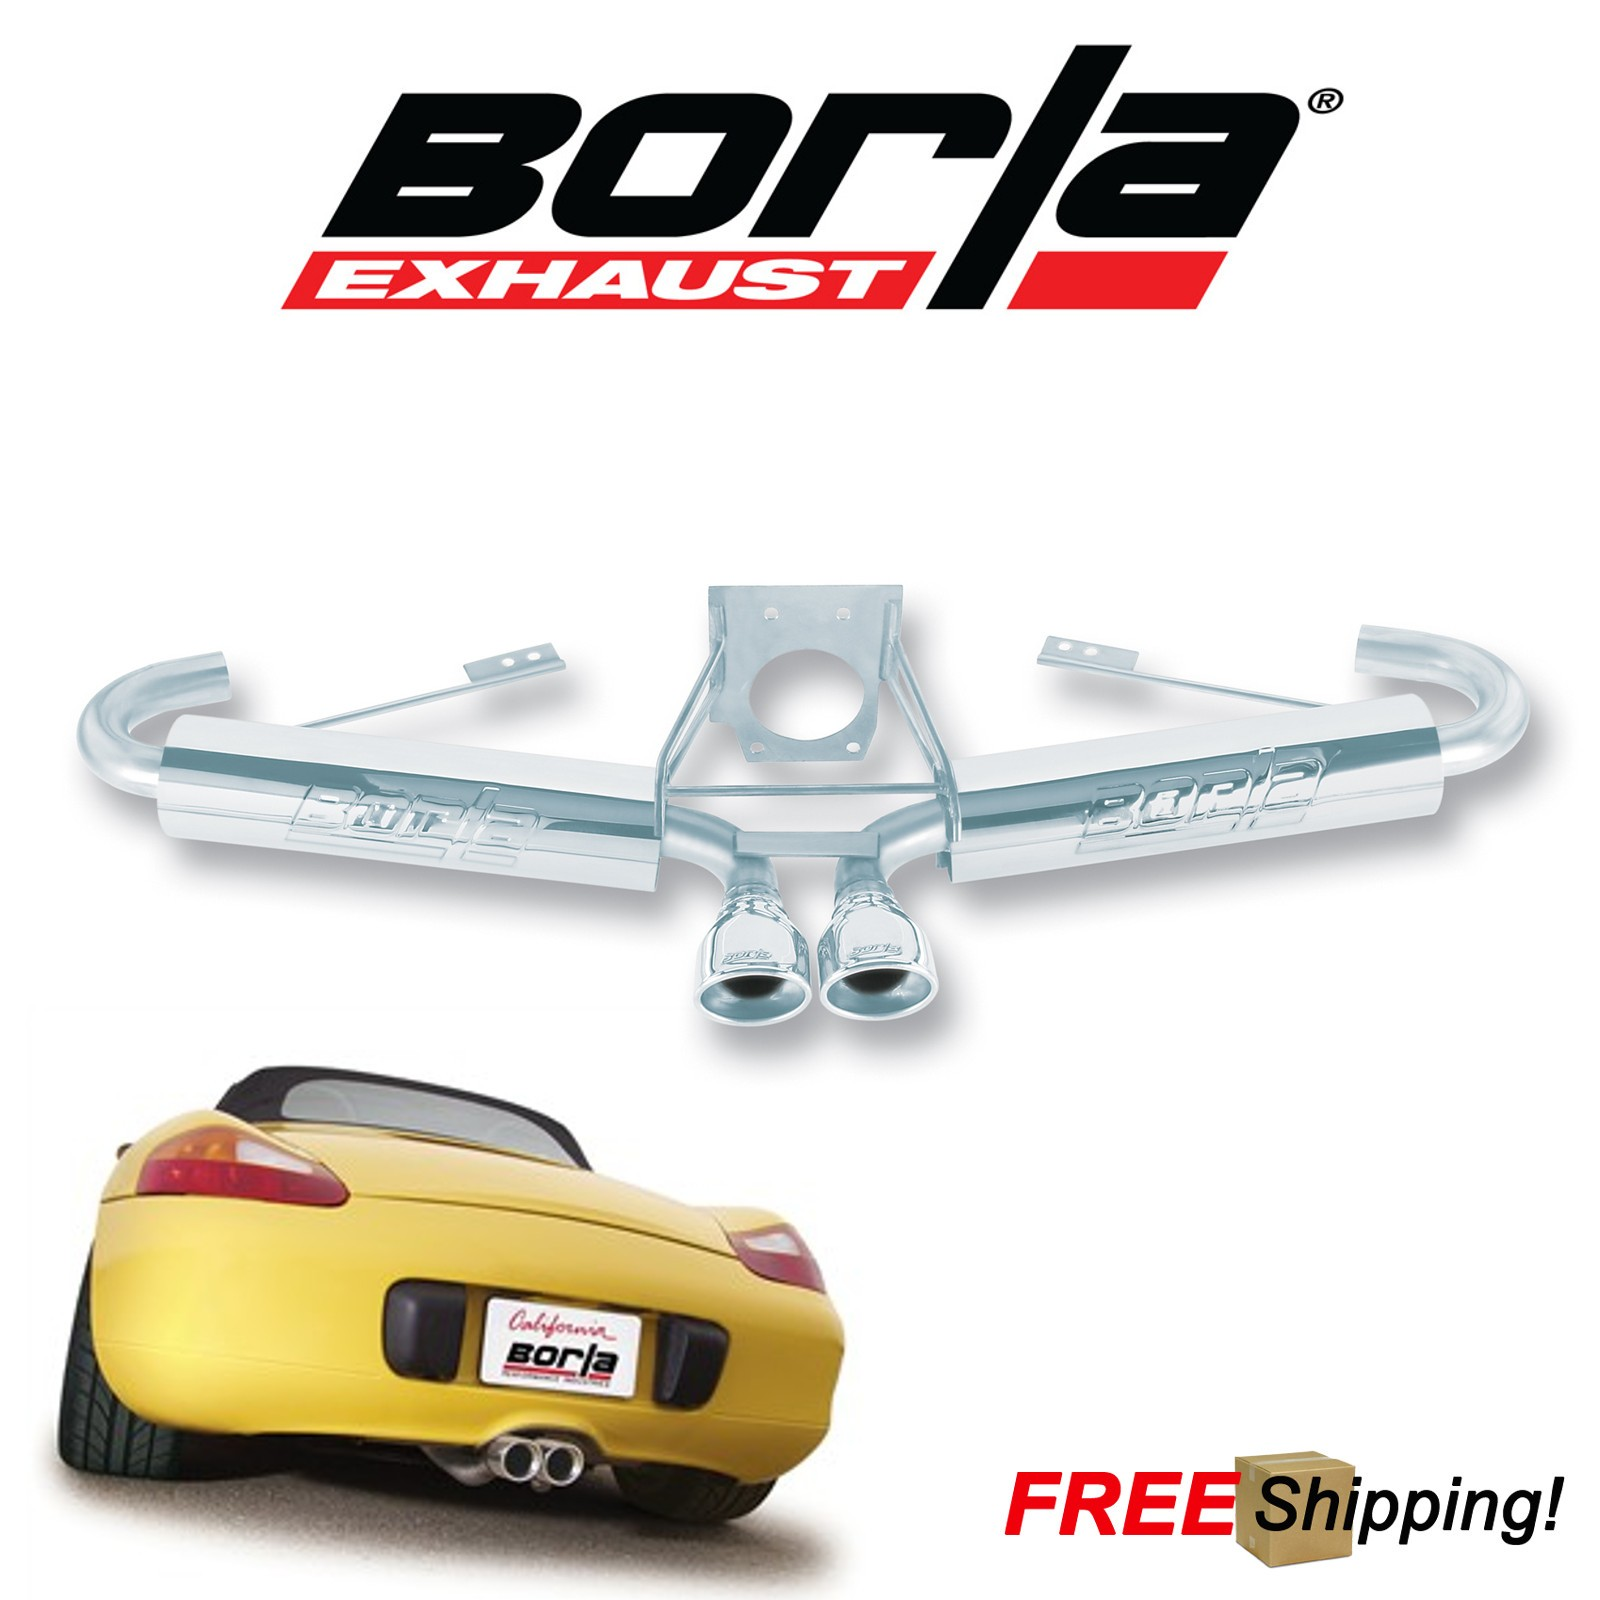 Details About Borla S Type Cat Back Performance Dual Exhaust Kit For 00 04 Porsche Boxster 32